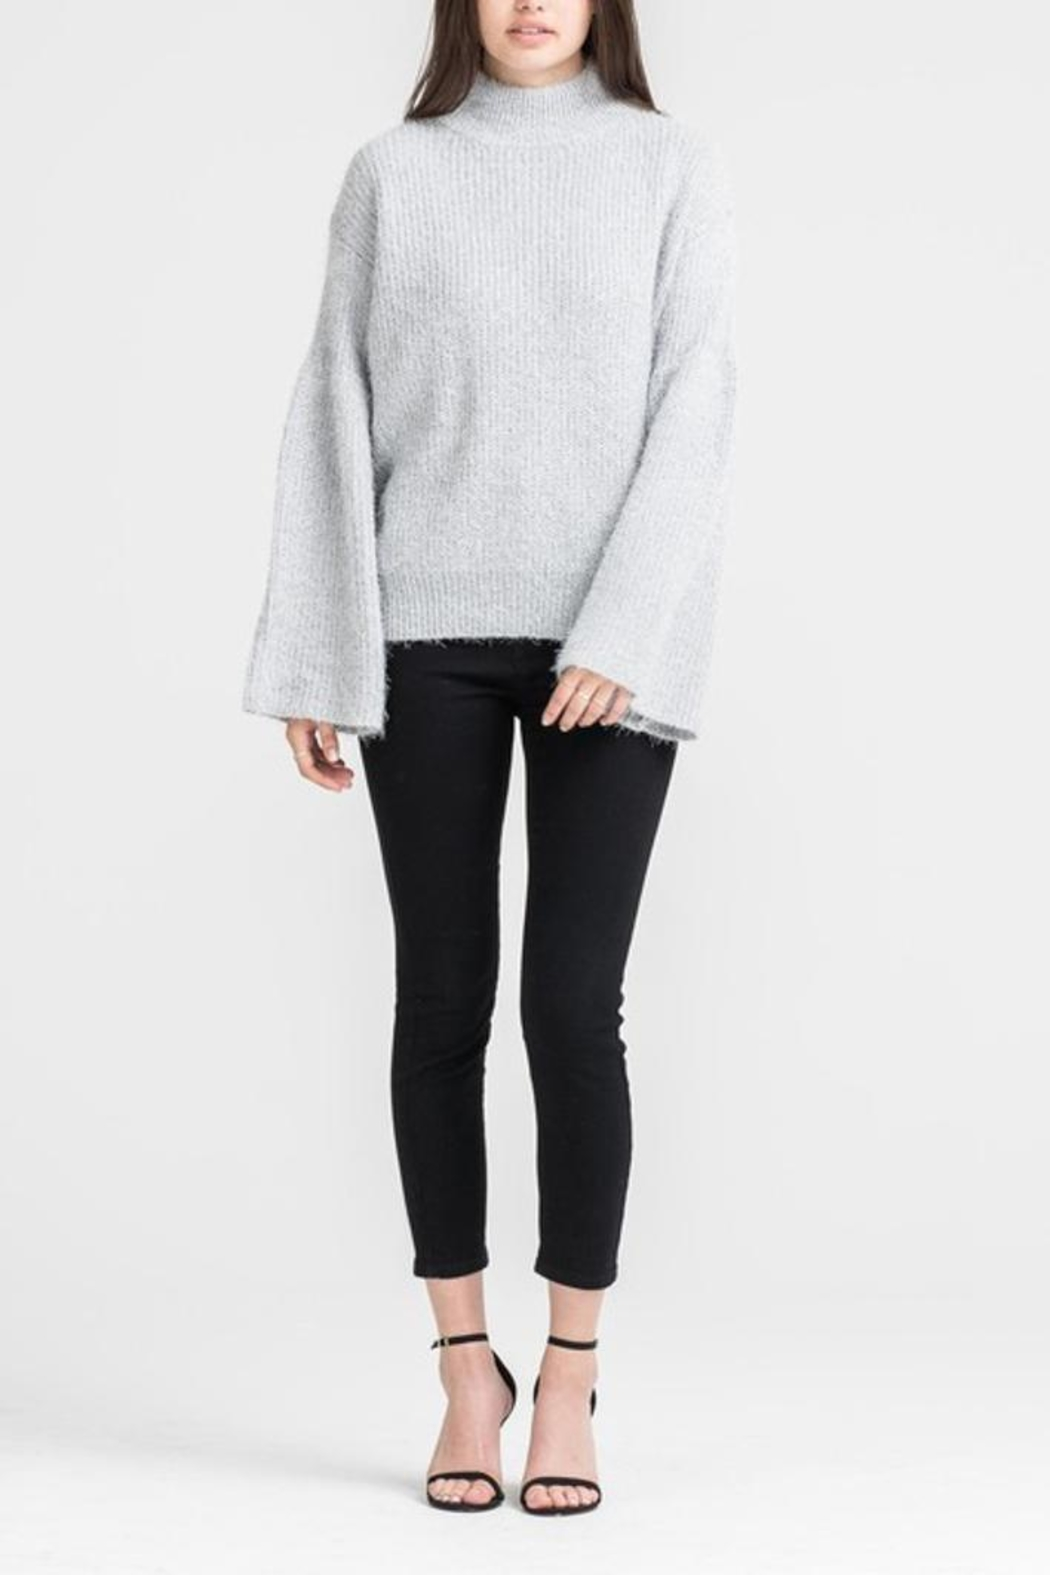 People Outfitter Hannah Sweater - Front Full Image